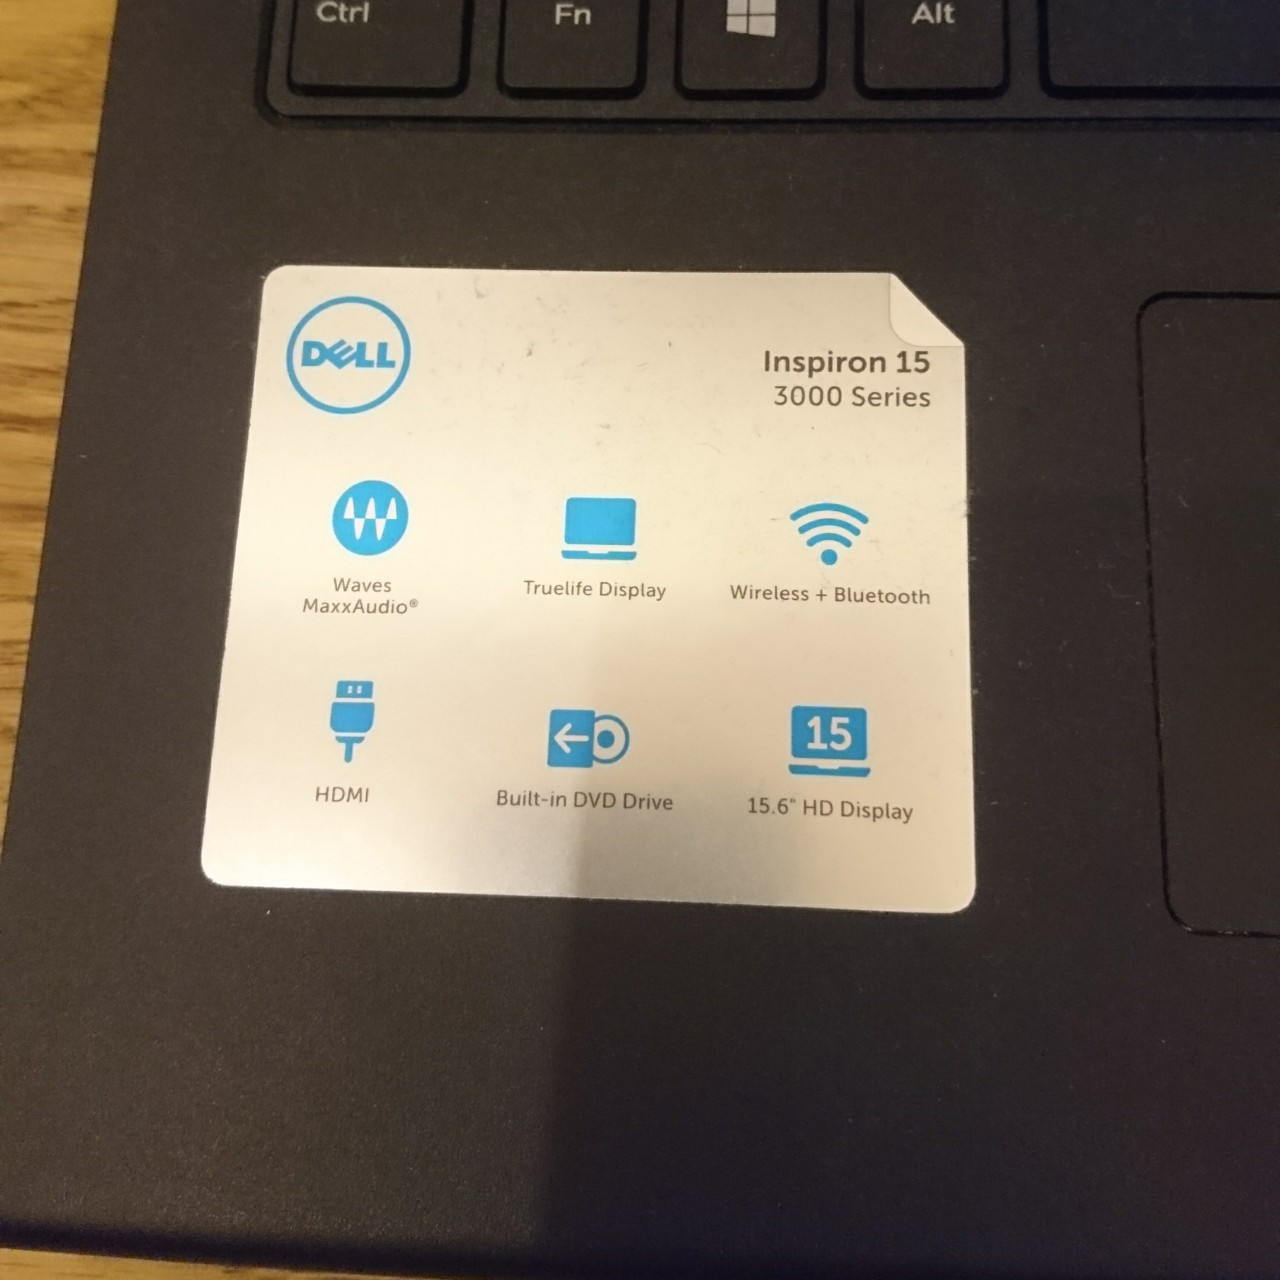 Dell Inspiron 15 3000 series Laptop for sale 500 gb    - Depop